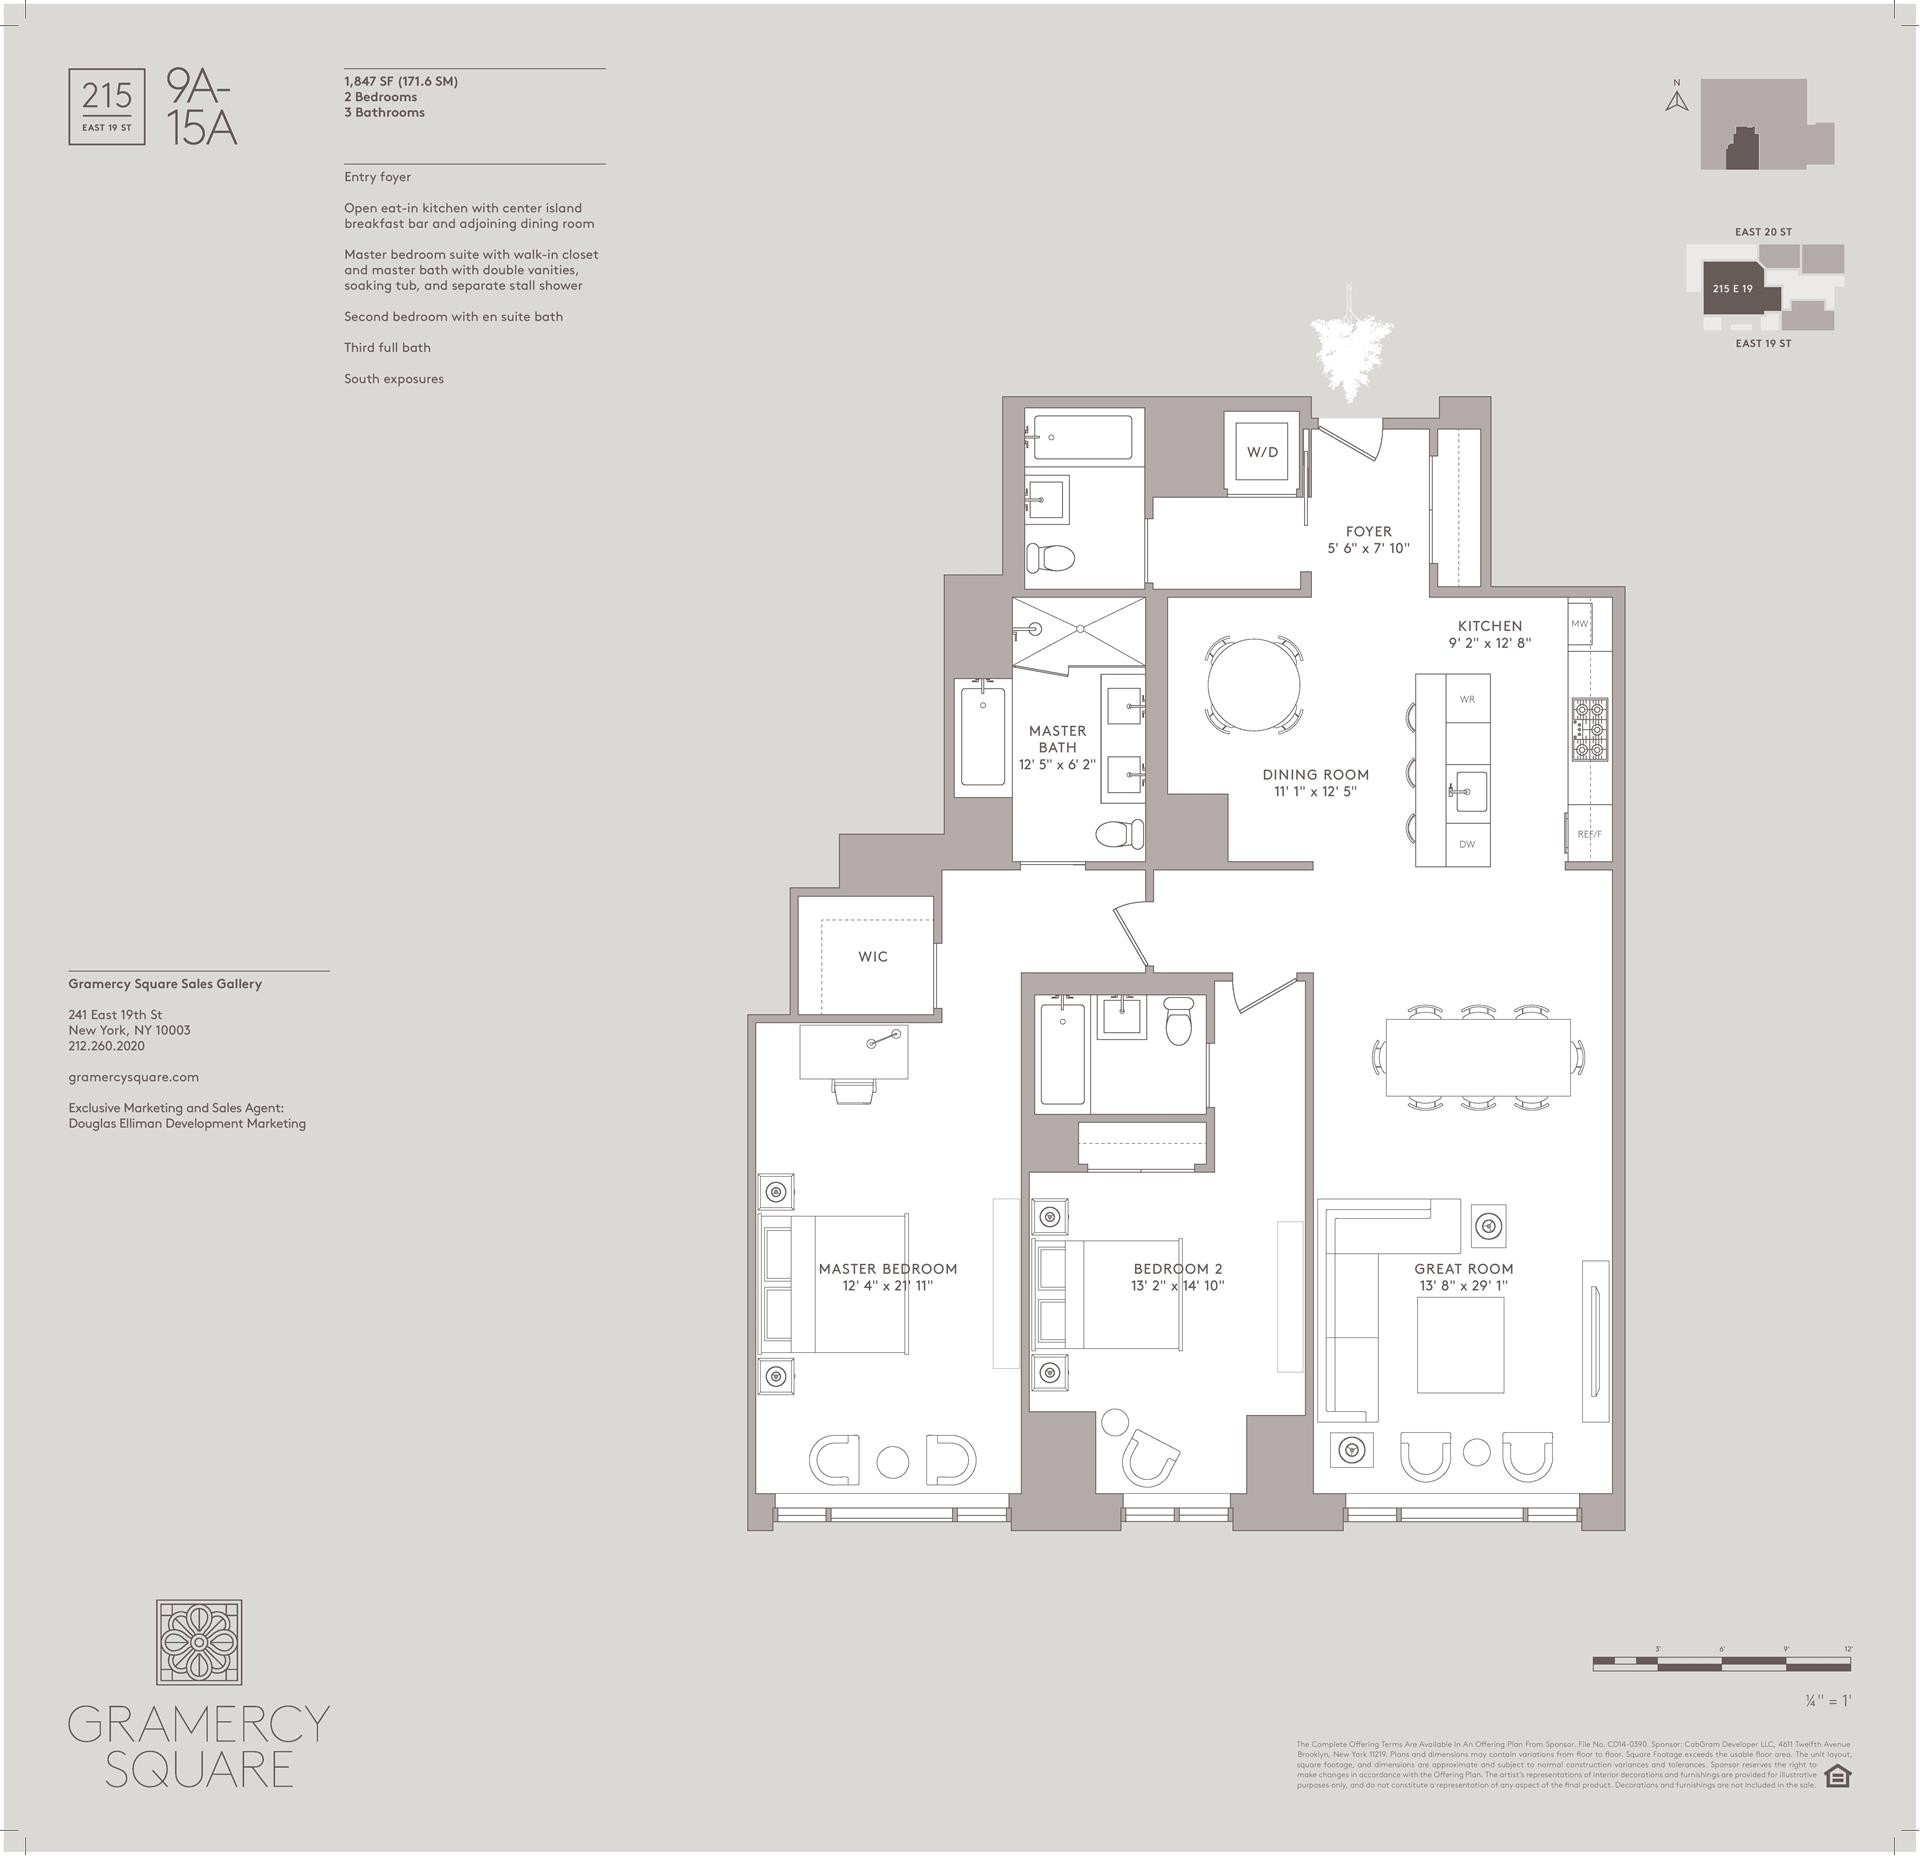 Floor plan of Gramercy Square, 215 East 19th St, 14A - Gramercy - Union Square, New York